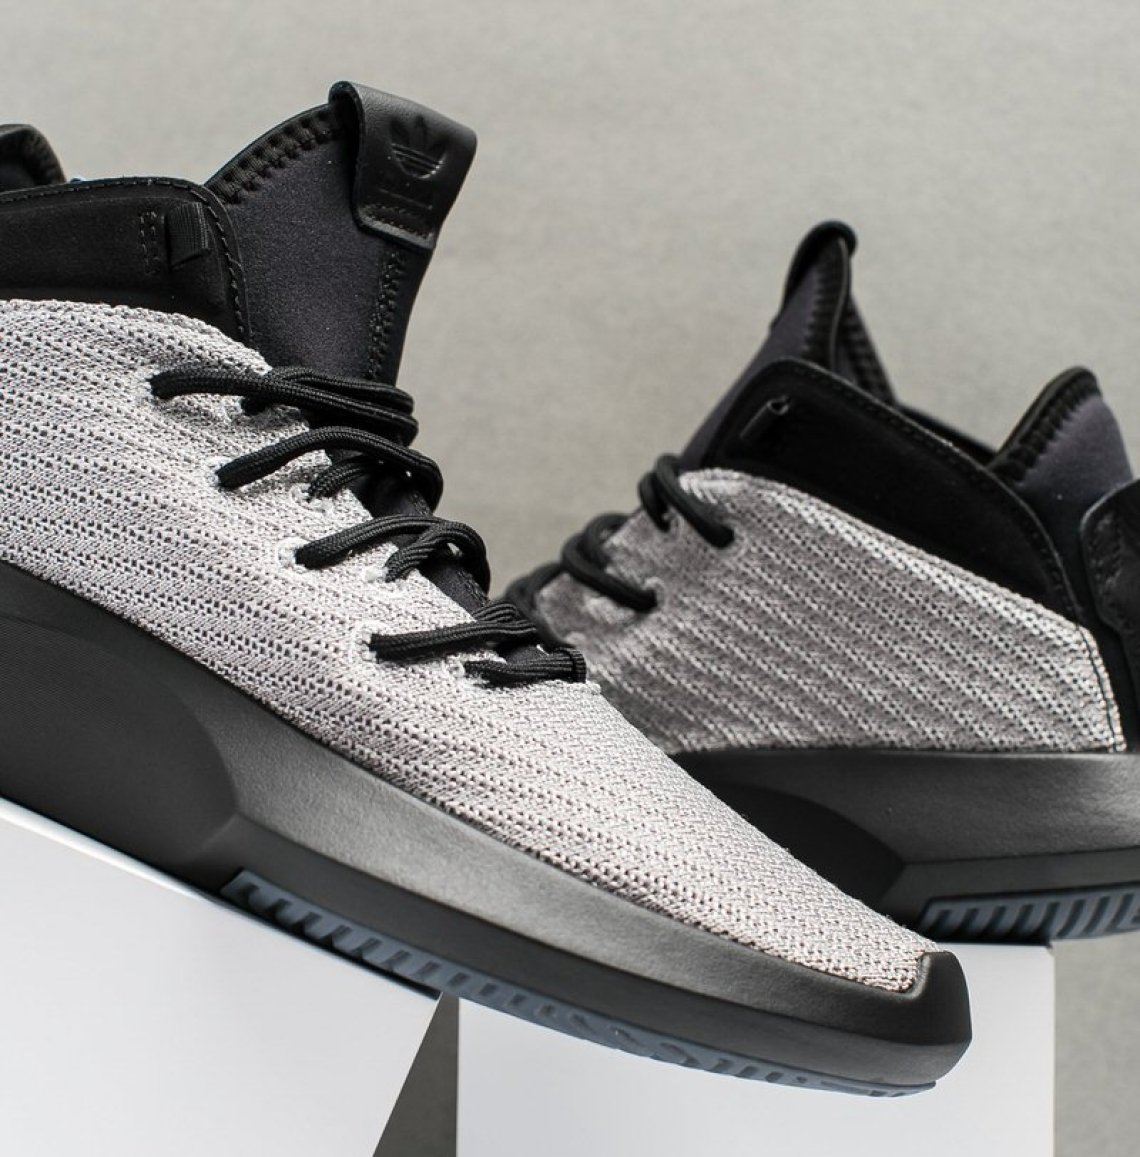 official photos b4493 5d392 ... how to buy ... adidas Crazy 1 ADV Primeknit SilverBlack ...